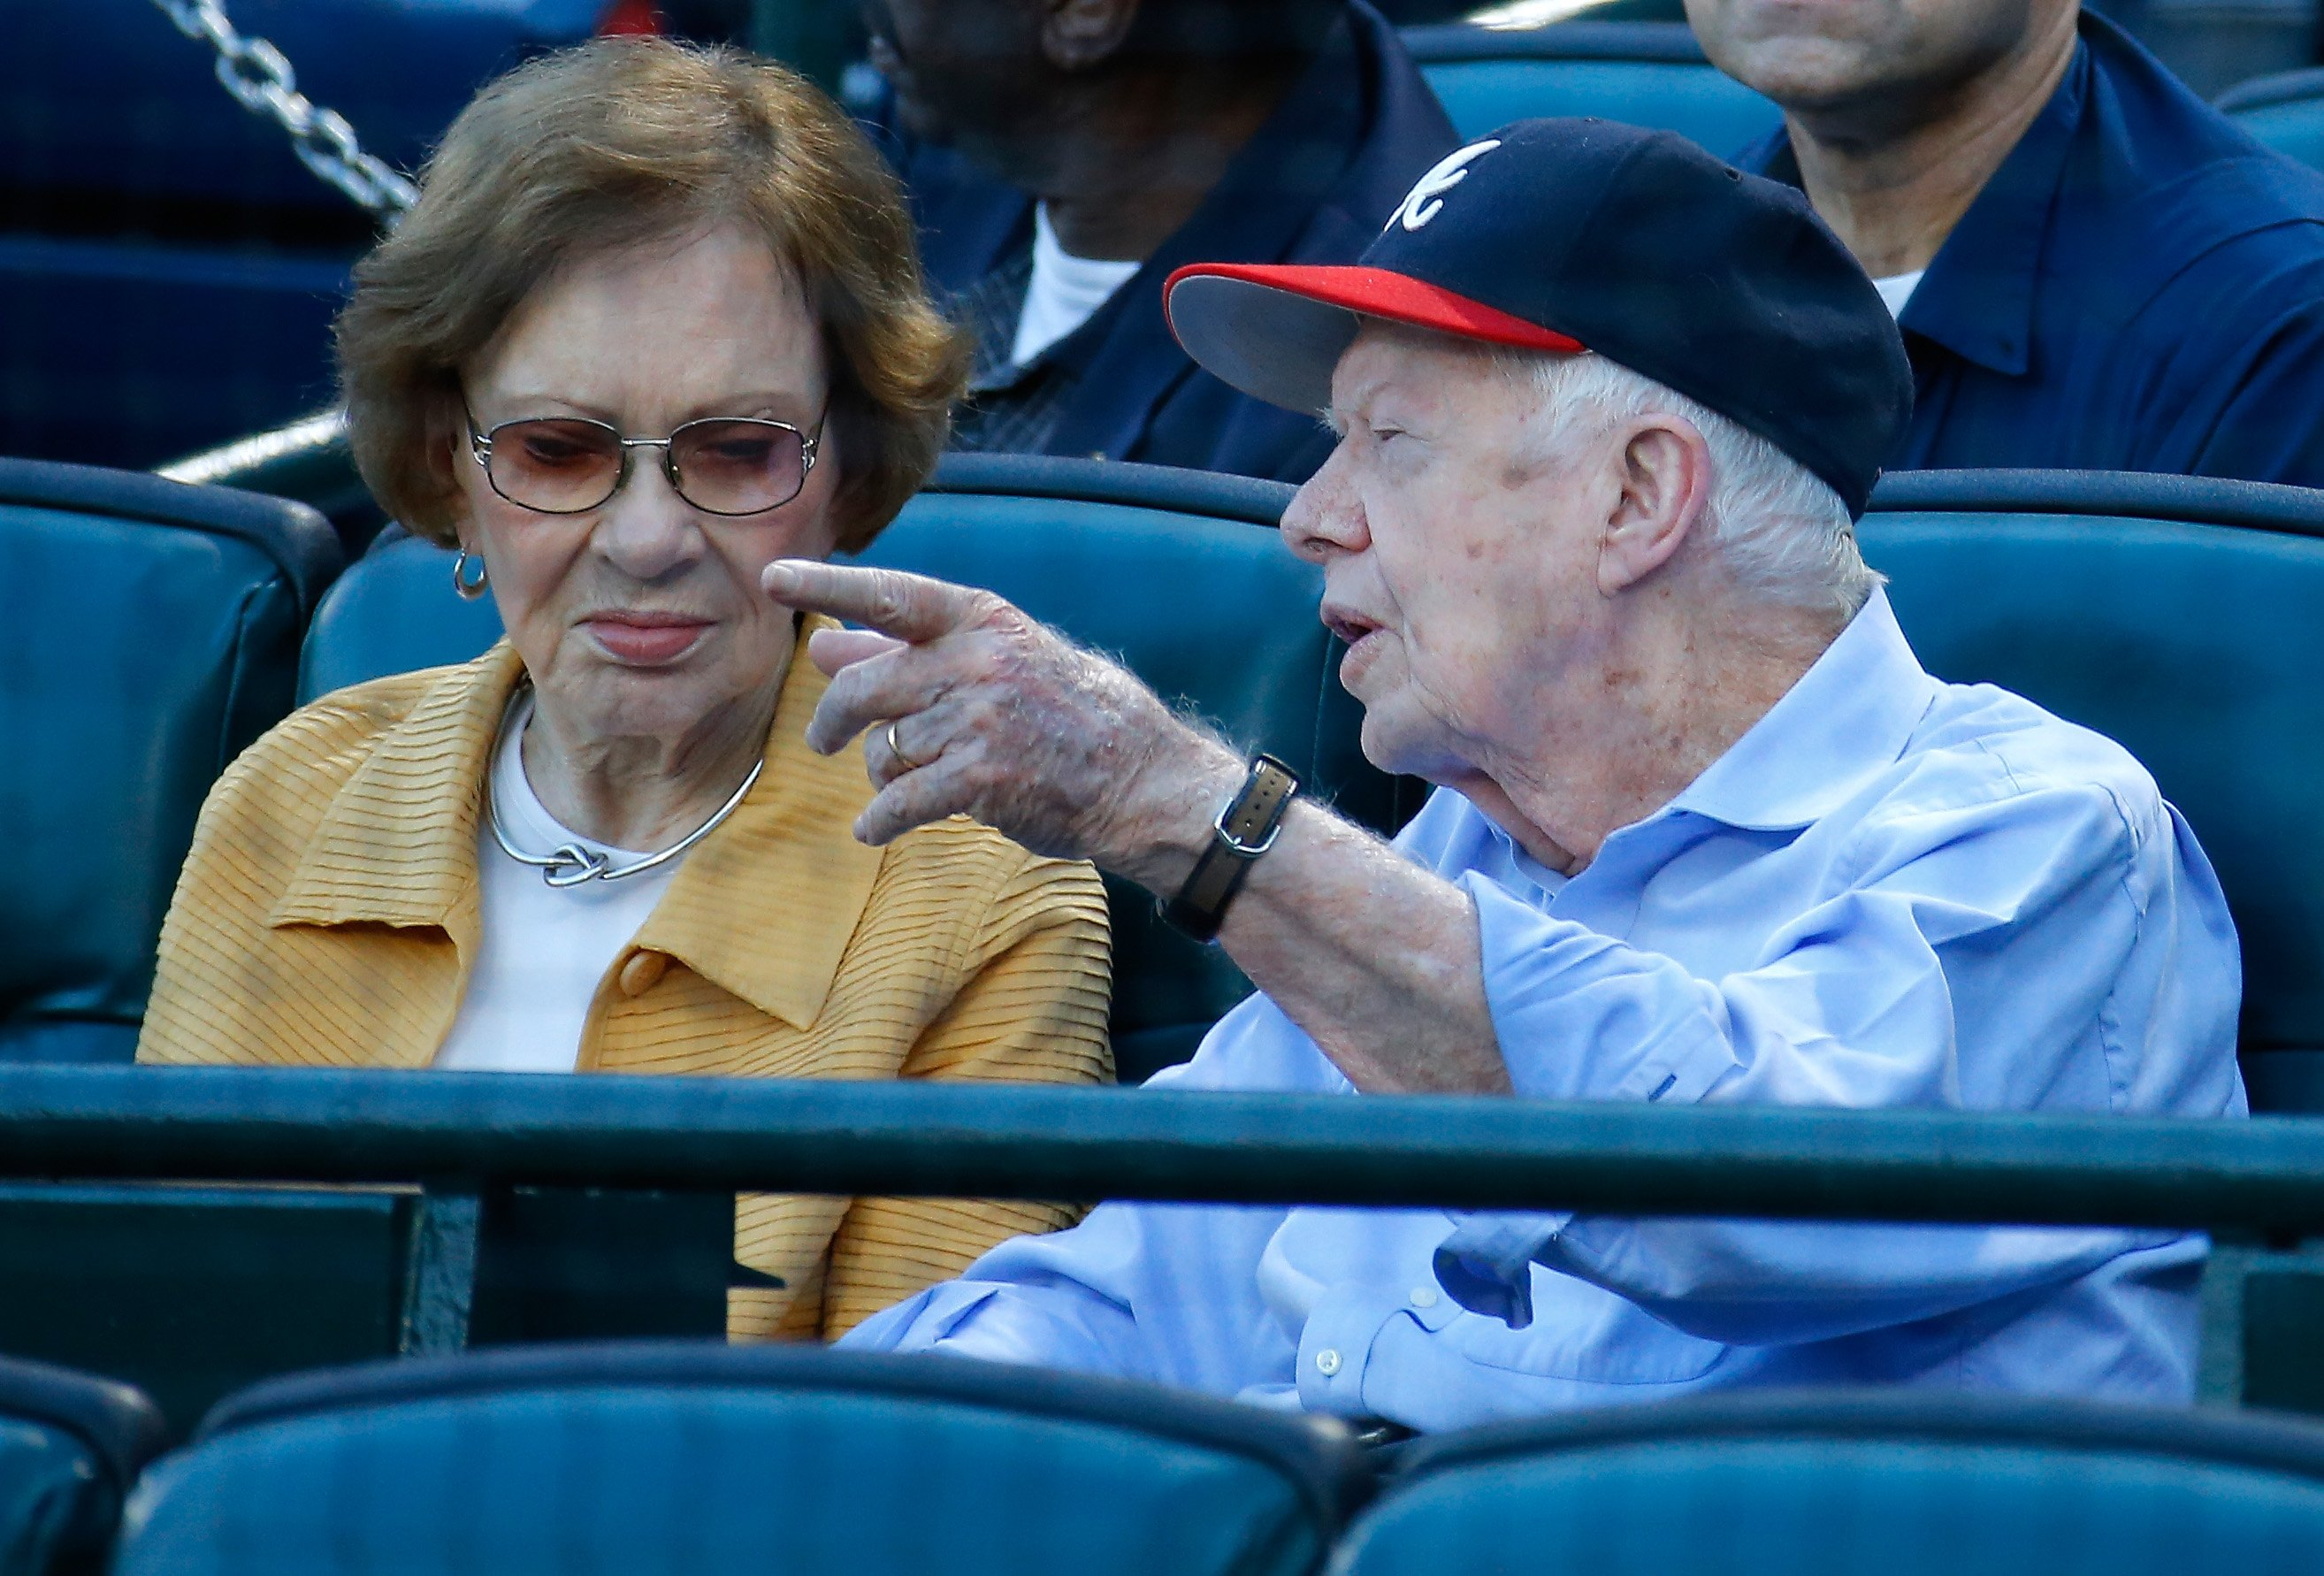 Jimmy Carter et sa femme Rosalynn au match opposant les Braves d'Atlanta et les Blue Jays de Toronto à Atlanta, en Géorgie | Photo: Getty Images